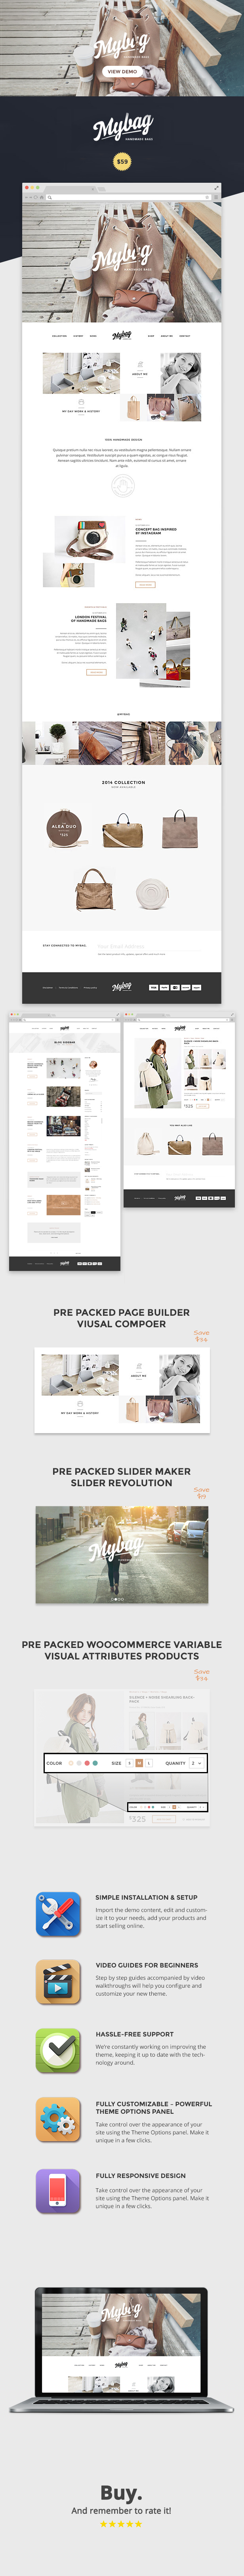 MyBag Single Product WooCommerce Theme - 1